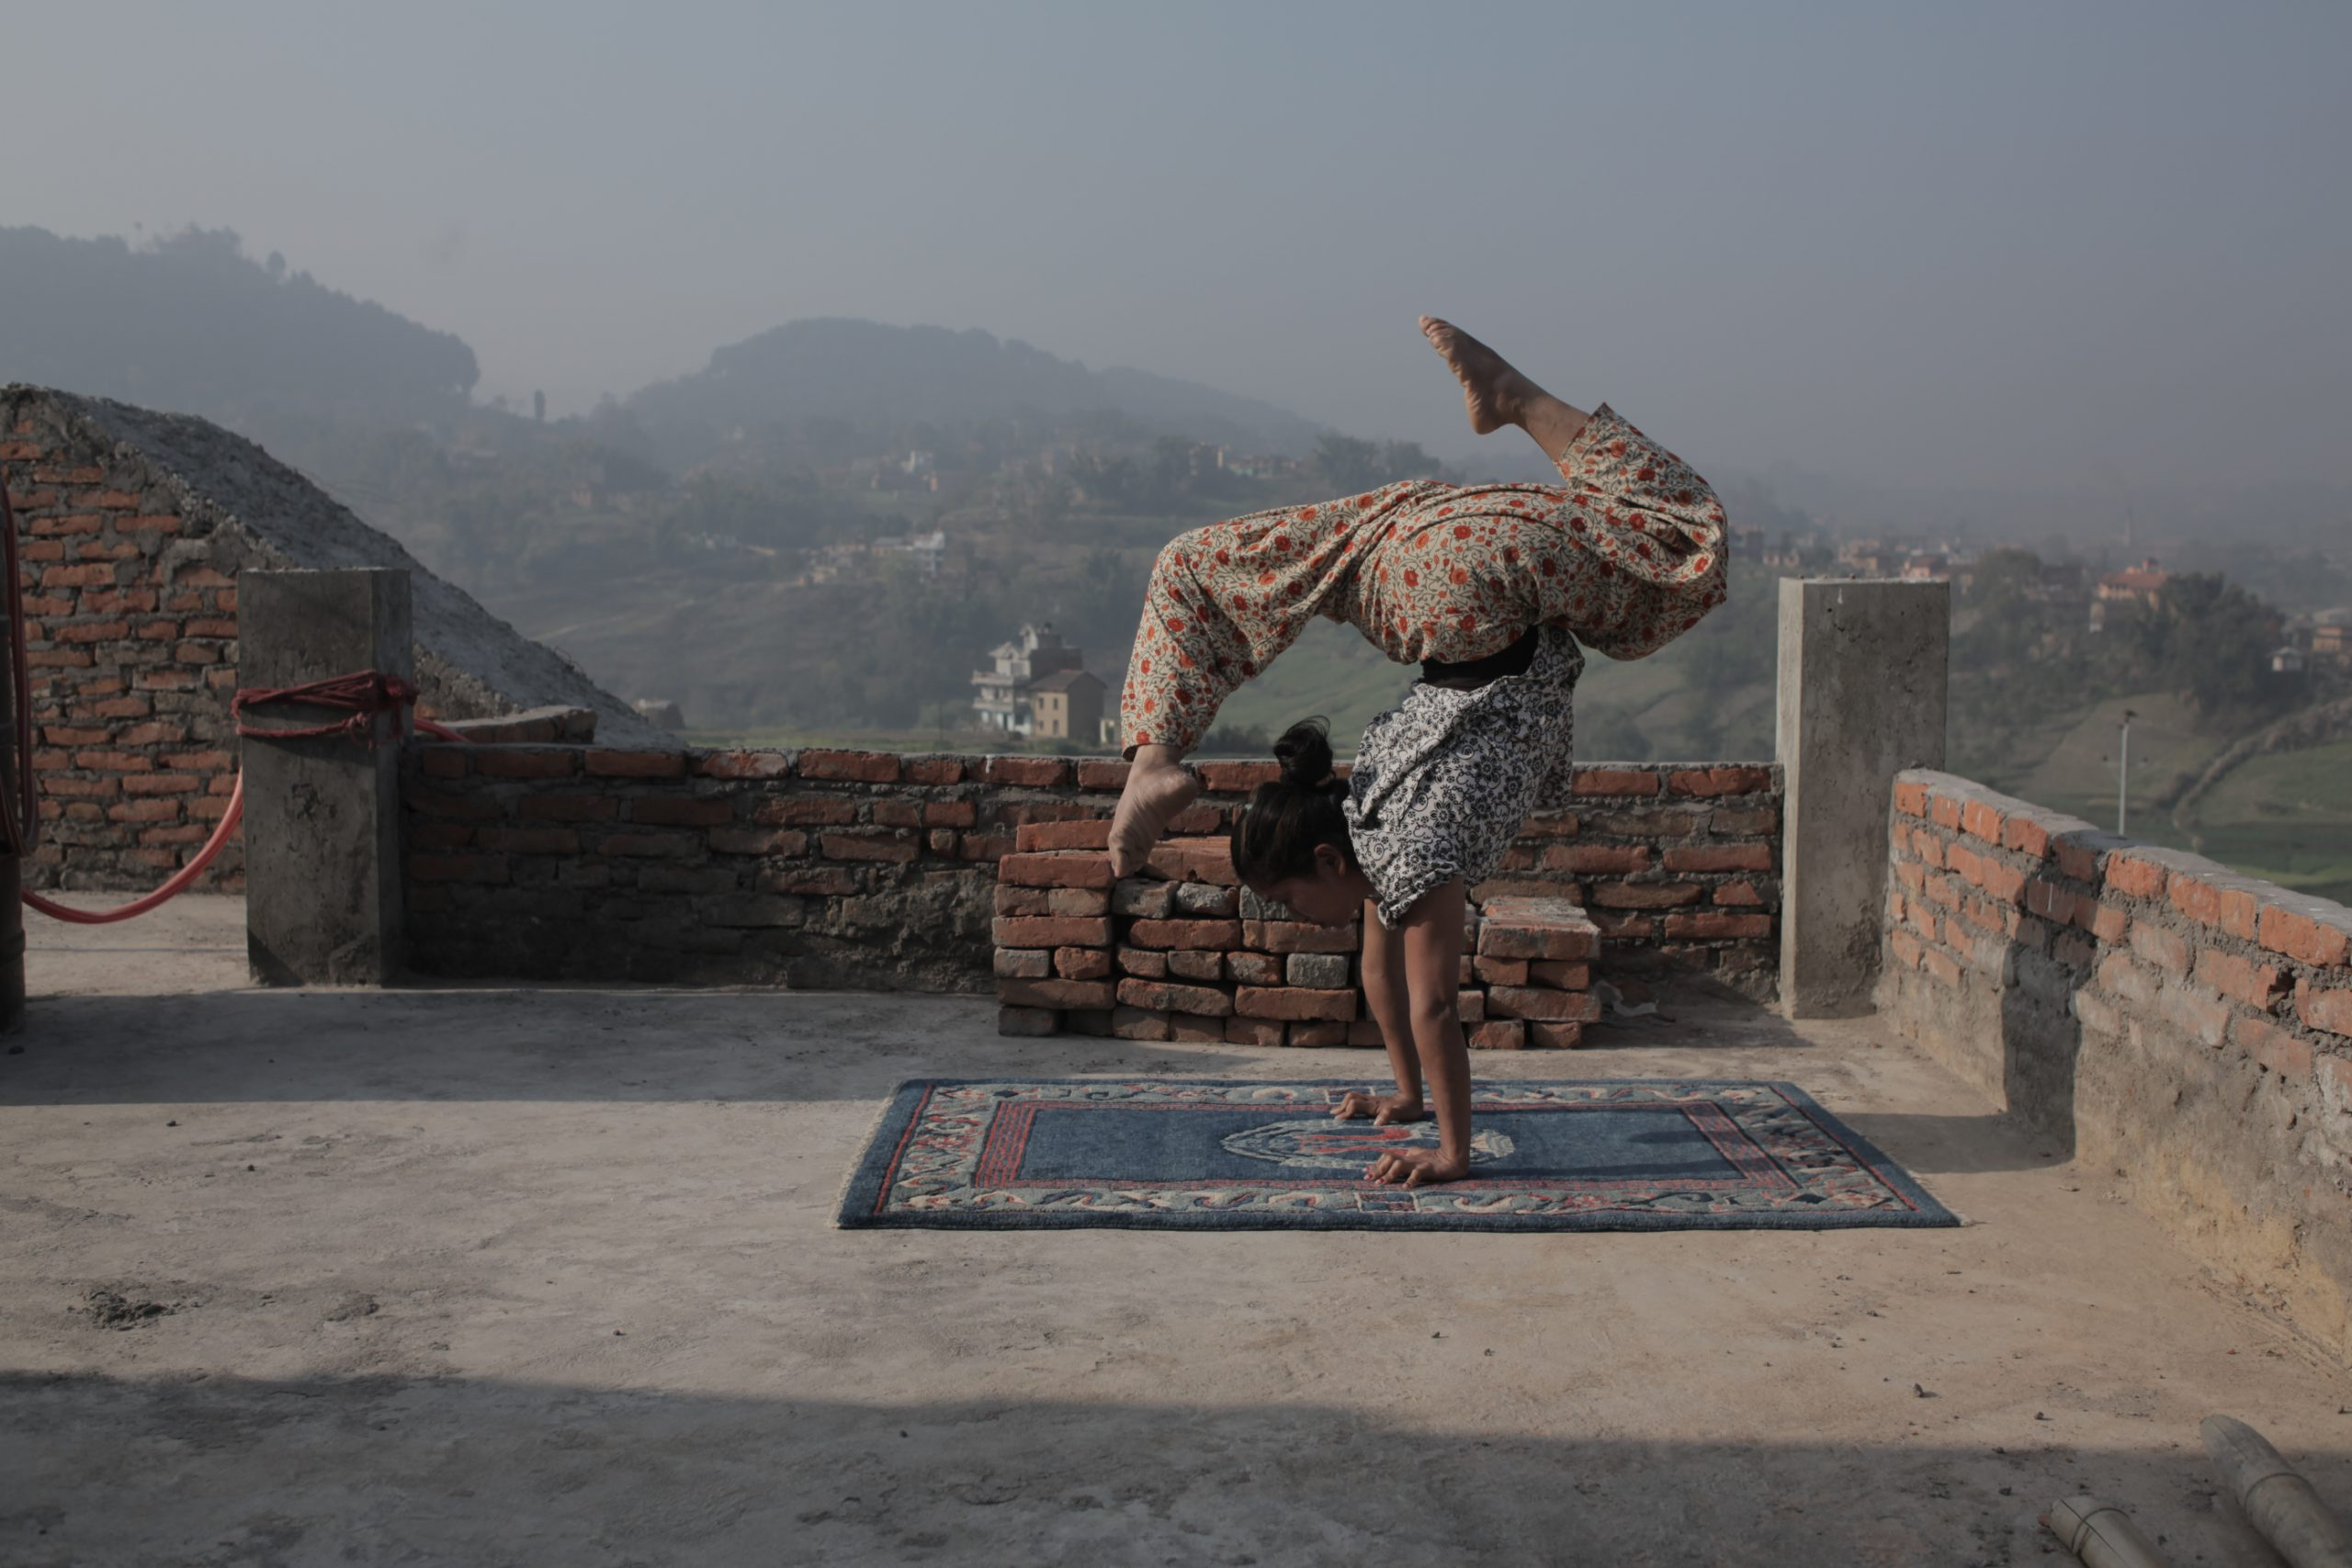 A woman doing a handstand atop a rooftop.